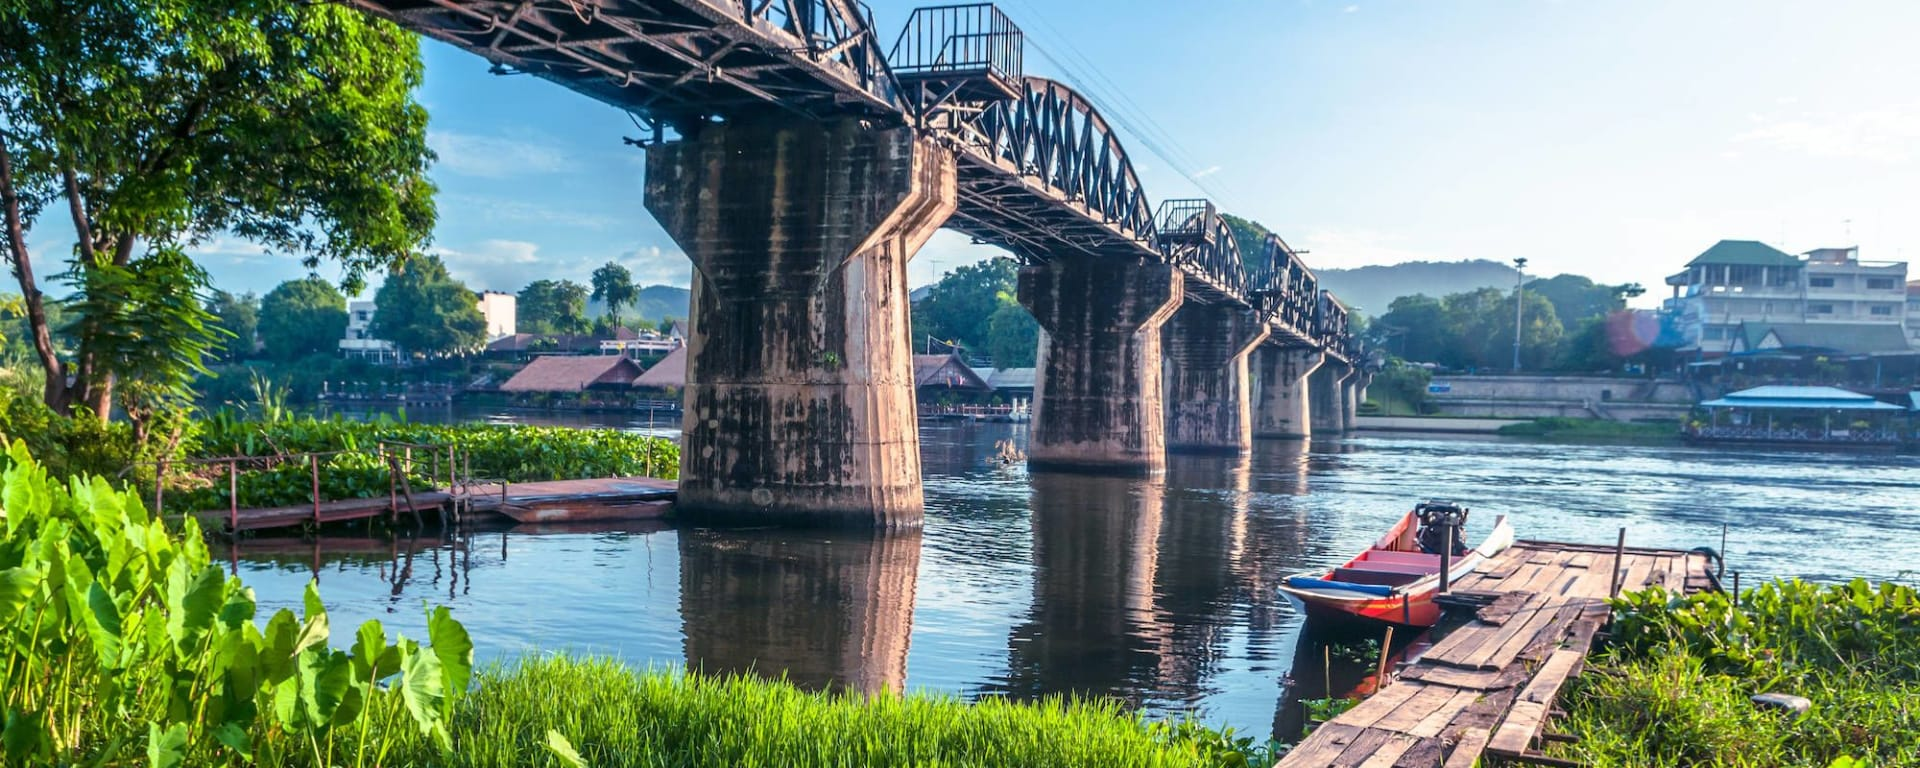 Le Siam royal de Bangkok: Bridge on River Kwai